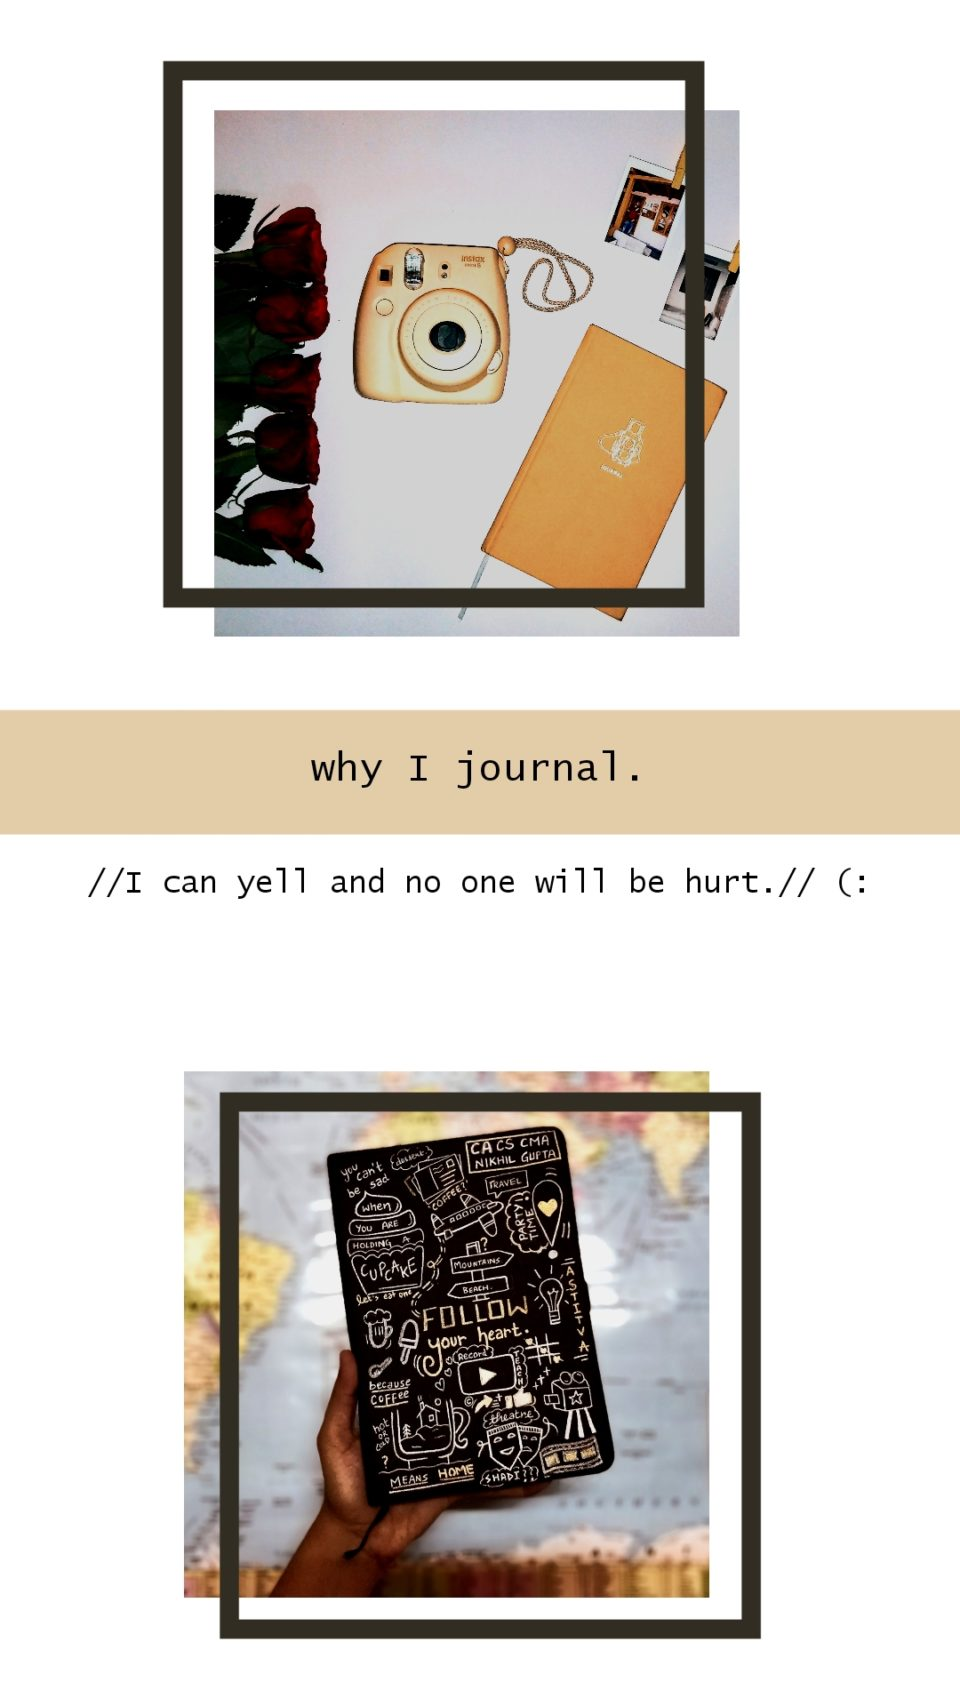 why i journal.